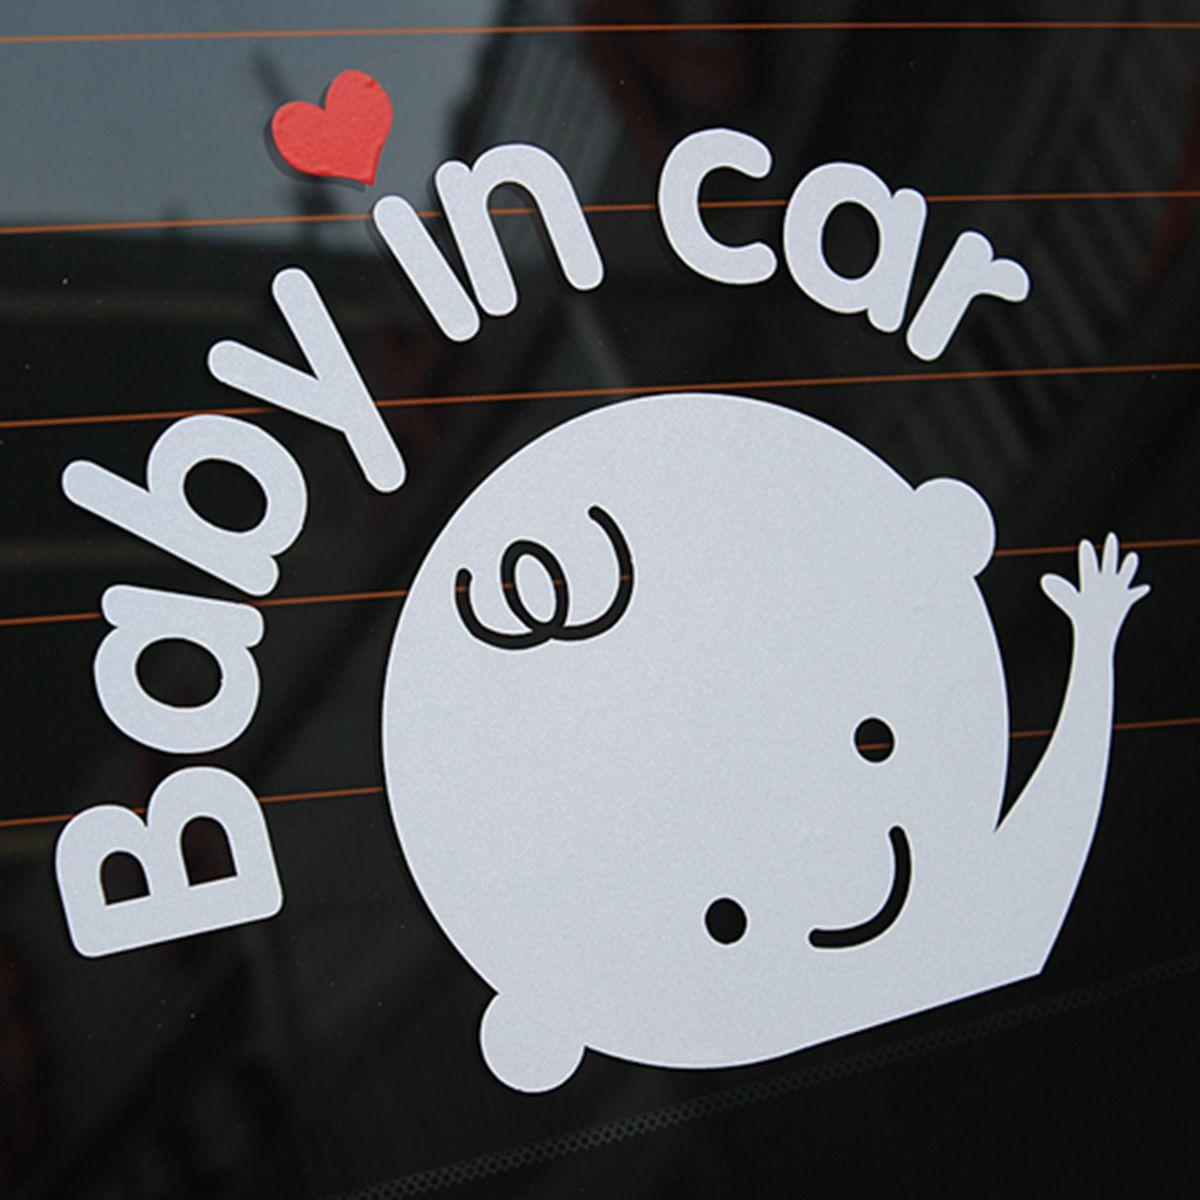 Car Window Signs & Decals Responsible Baby On Board Safety Decals Sticker Cars Window Graphics Decals